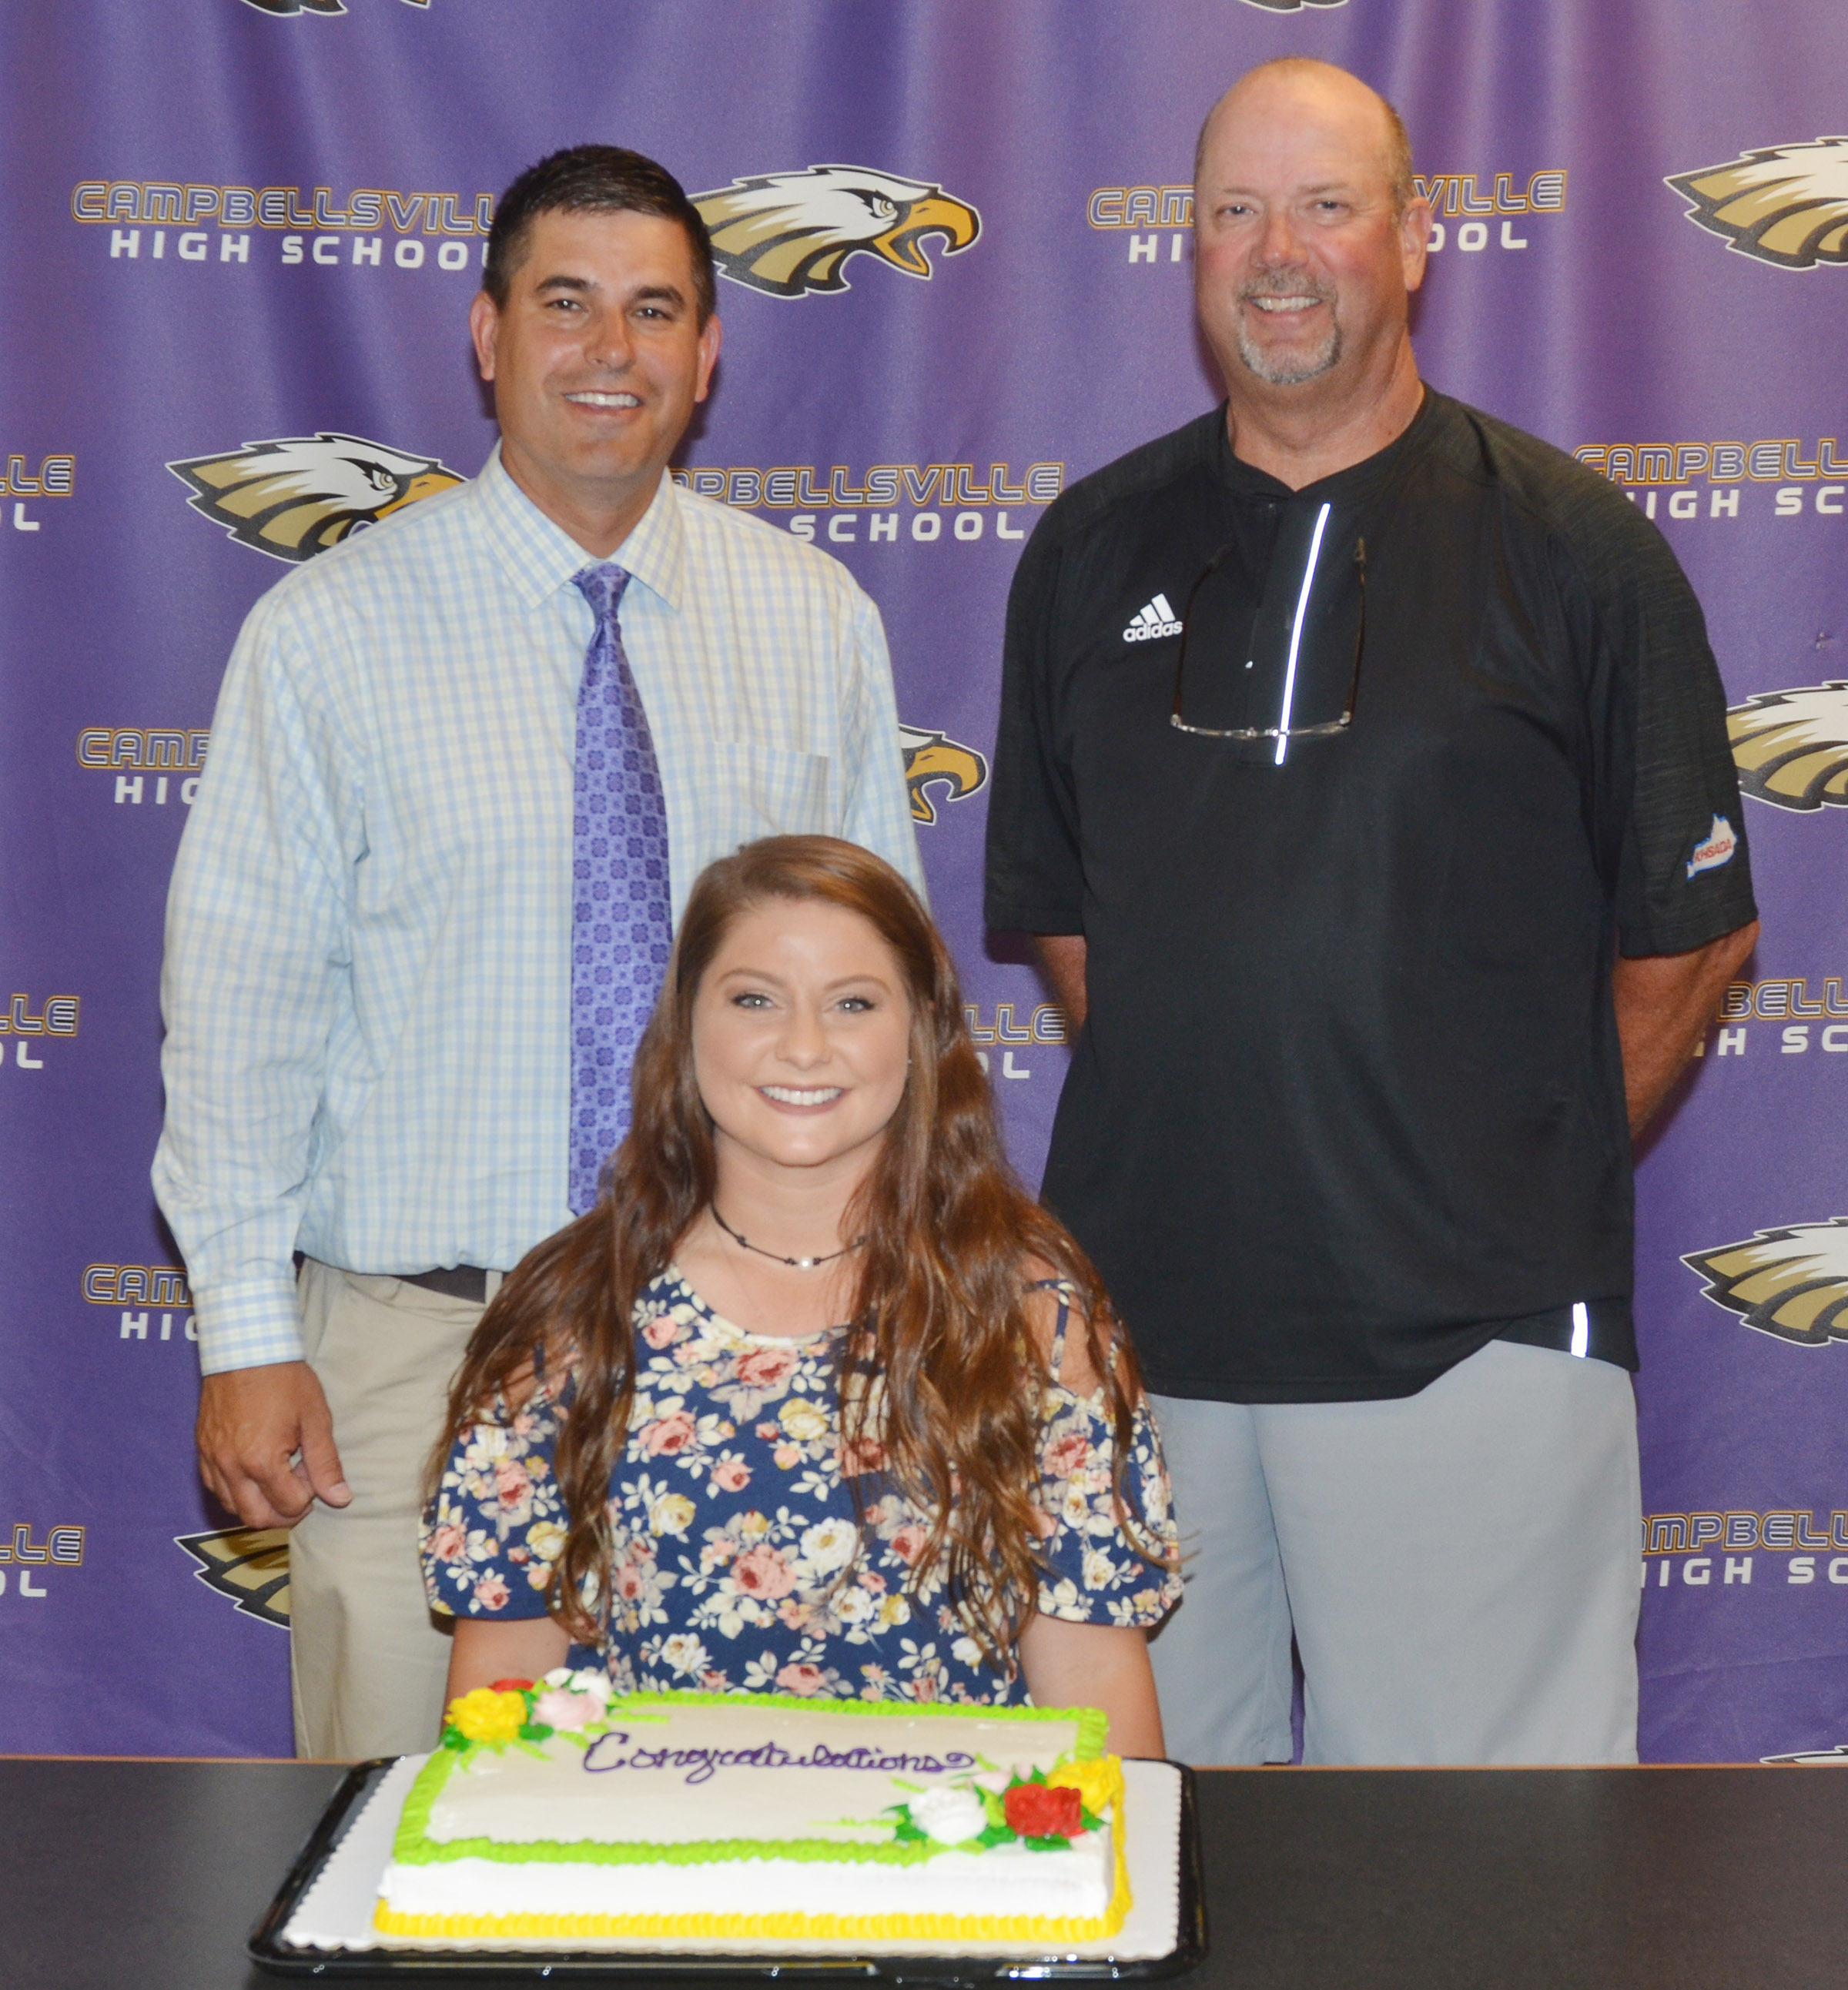 Cassidy Scantland will be the new CHS boys' golf coach and serve as the temporary girls' coach. She is pictured with CHS Principal Kirby Smith, at left, and CHS Athletic Director Tim Davis.